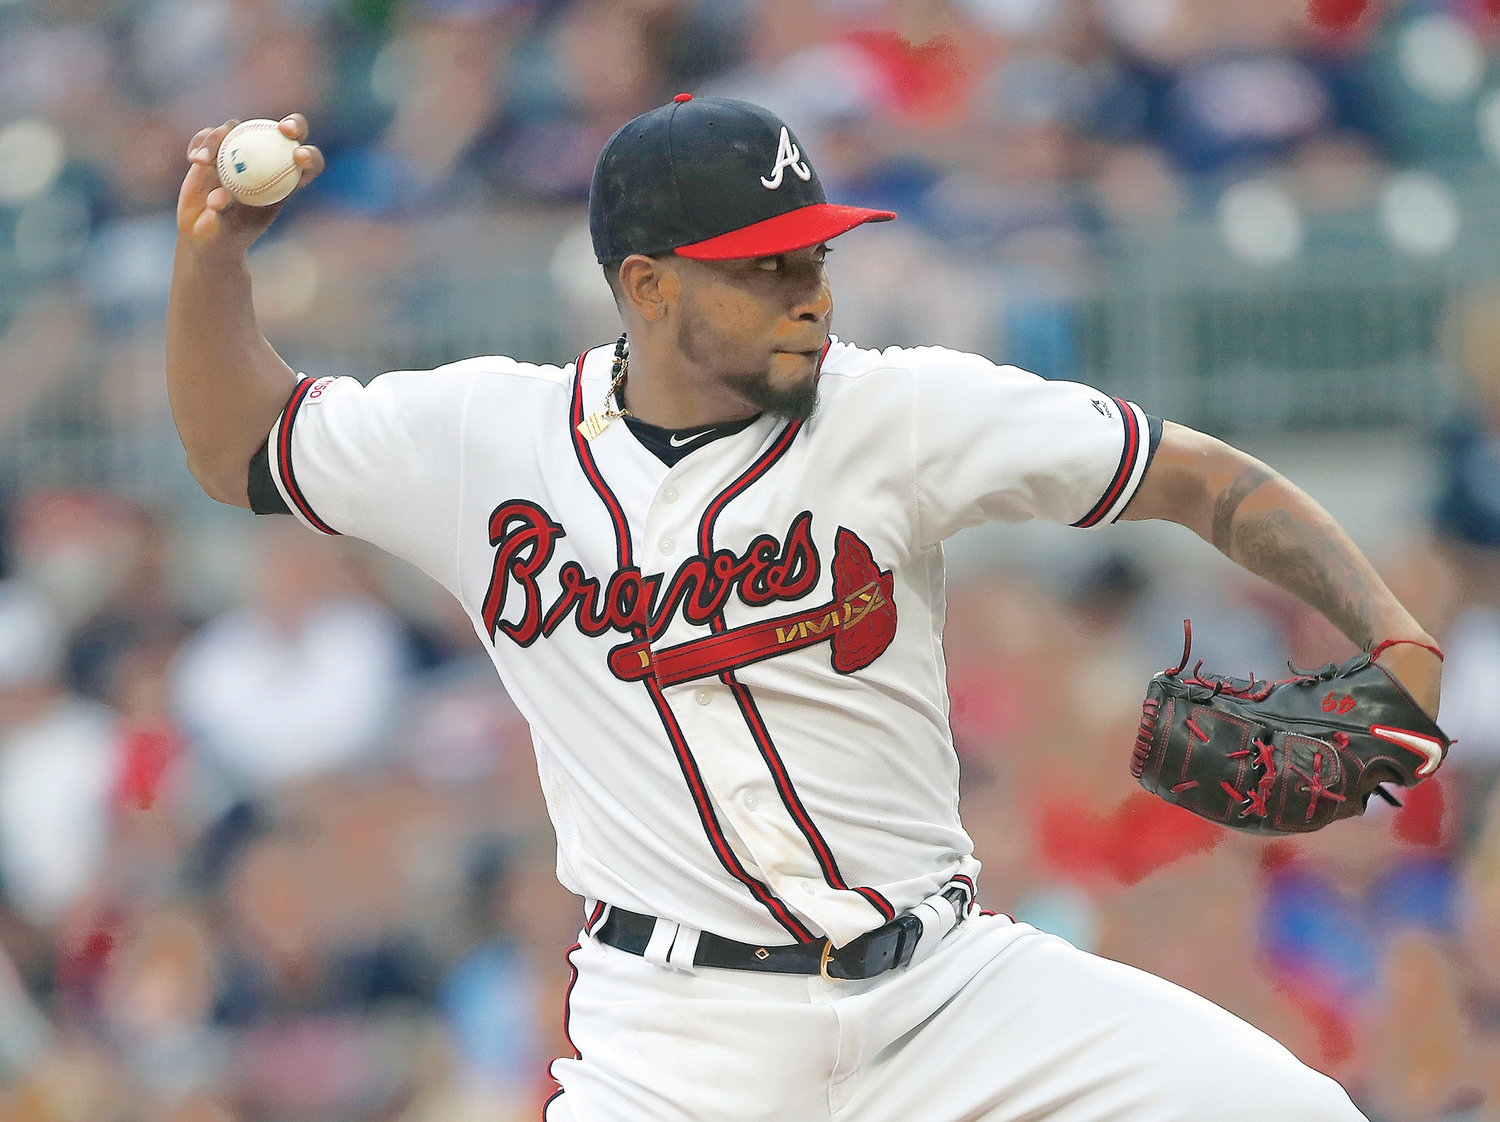 ATLANTA BRAVES starting pitcher Julio Teheran (49) works against the New York Mets in the first inning Tuesday, in Atlanta.